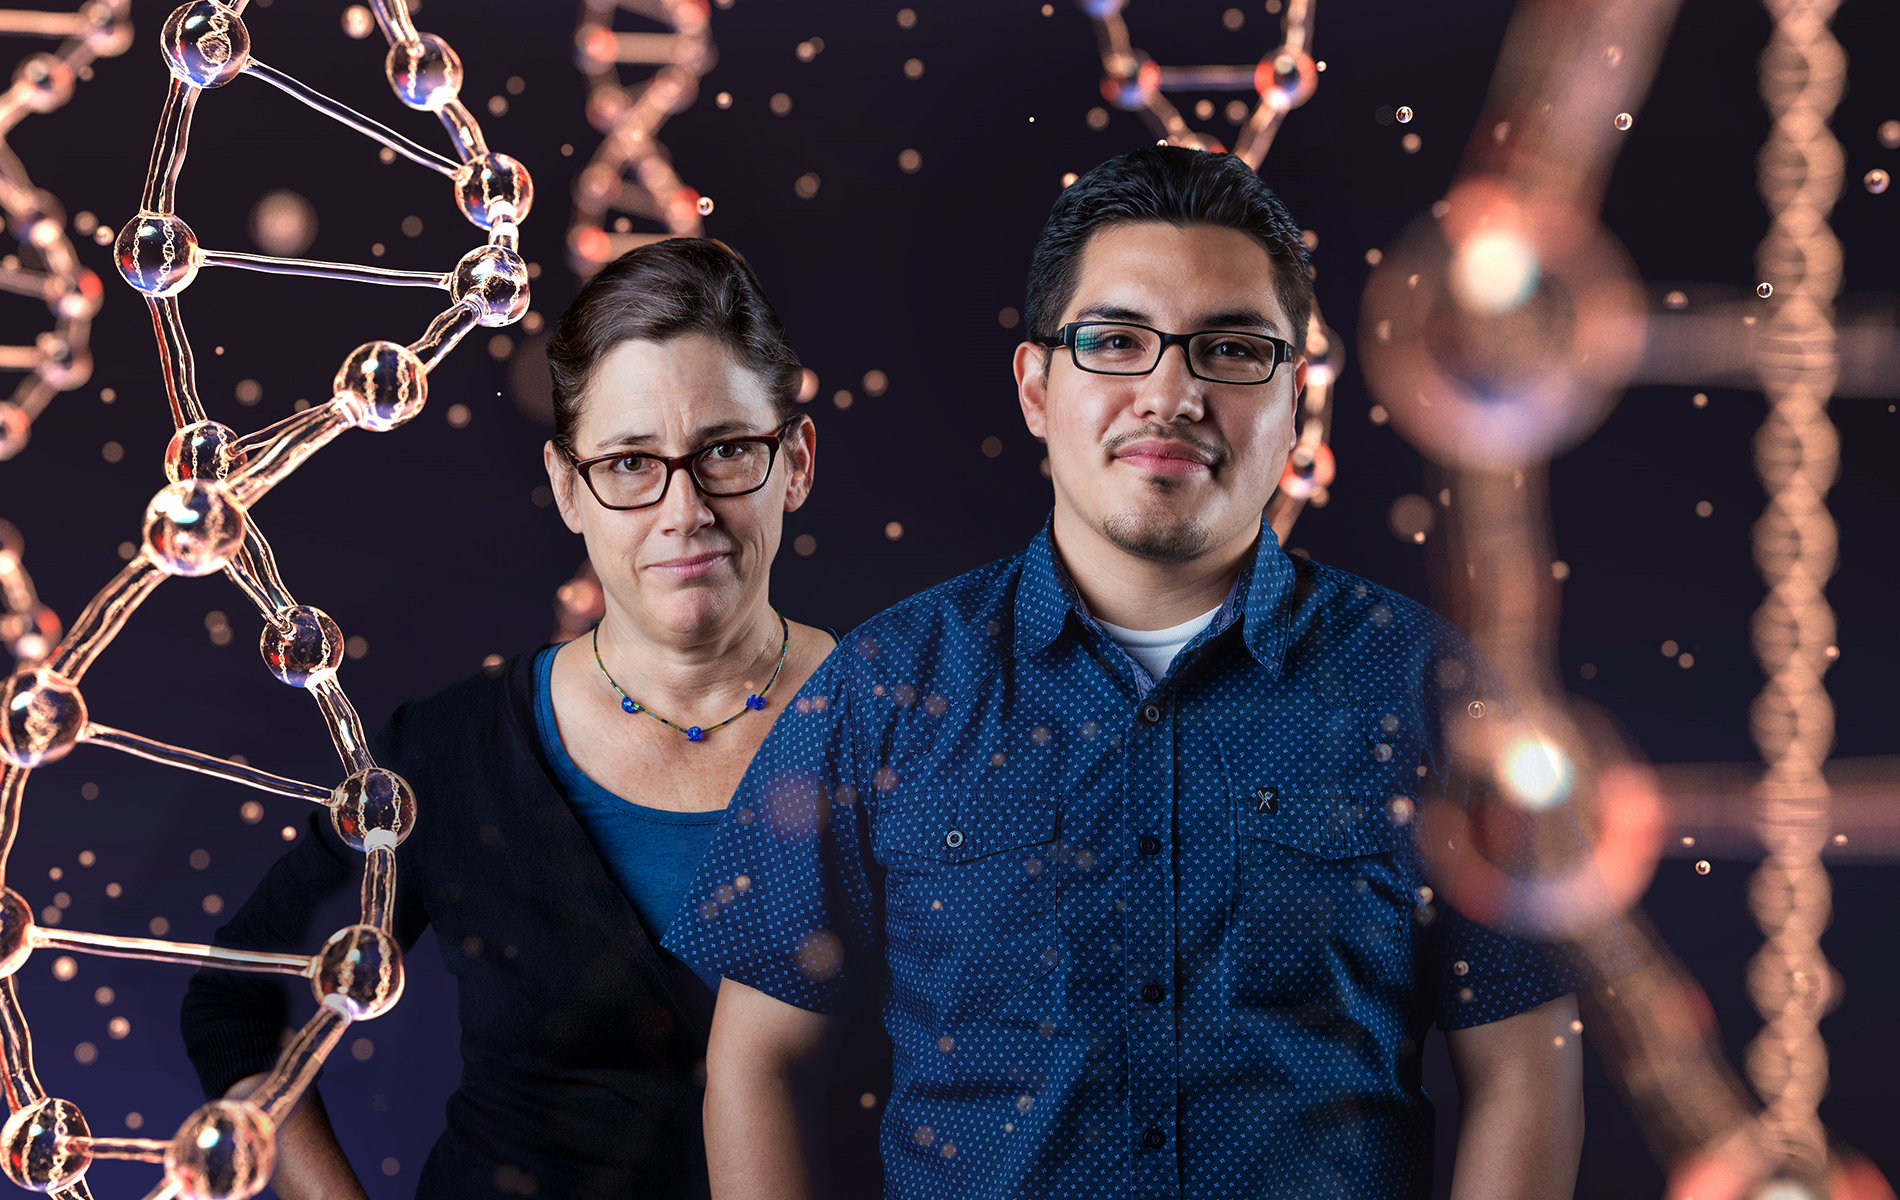 Two people posing with DNA in the background